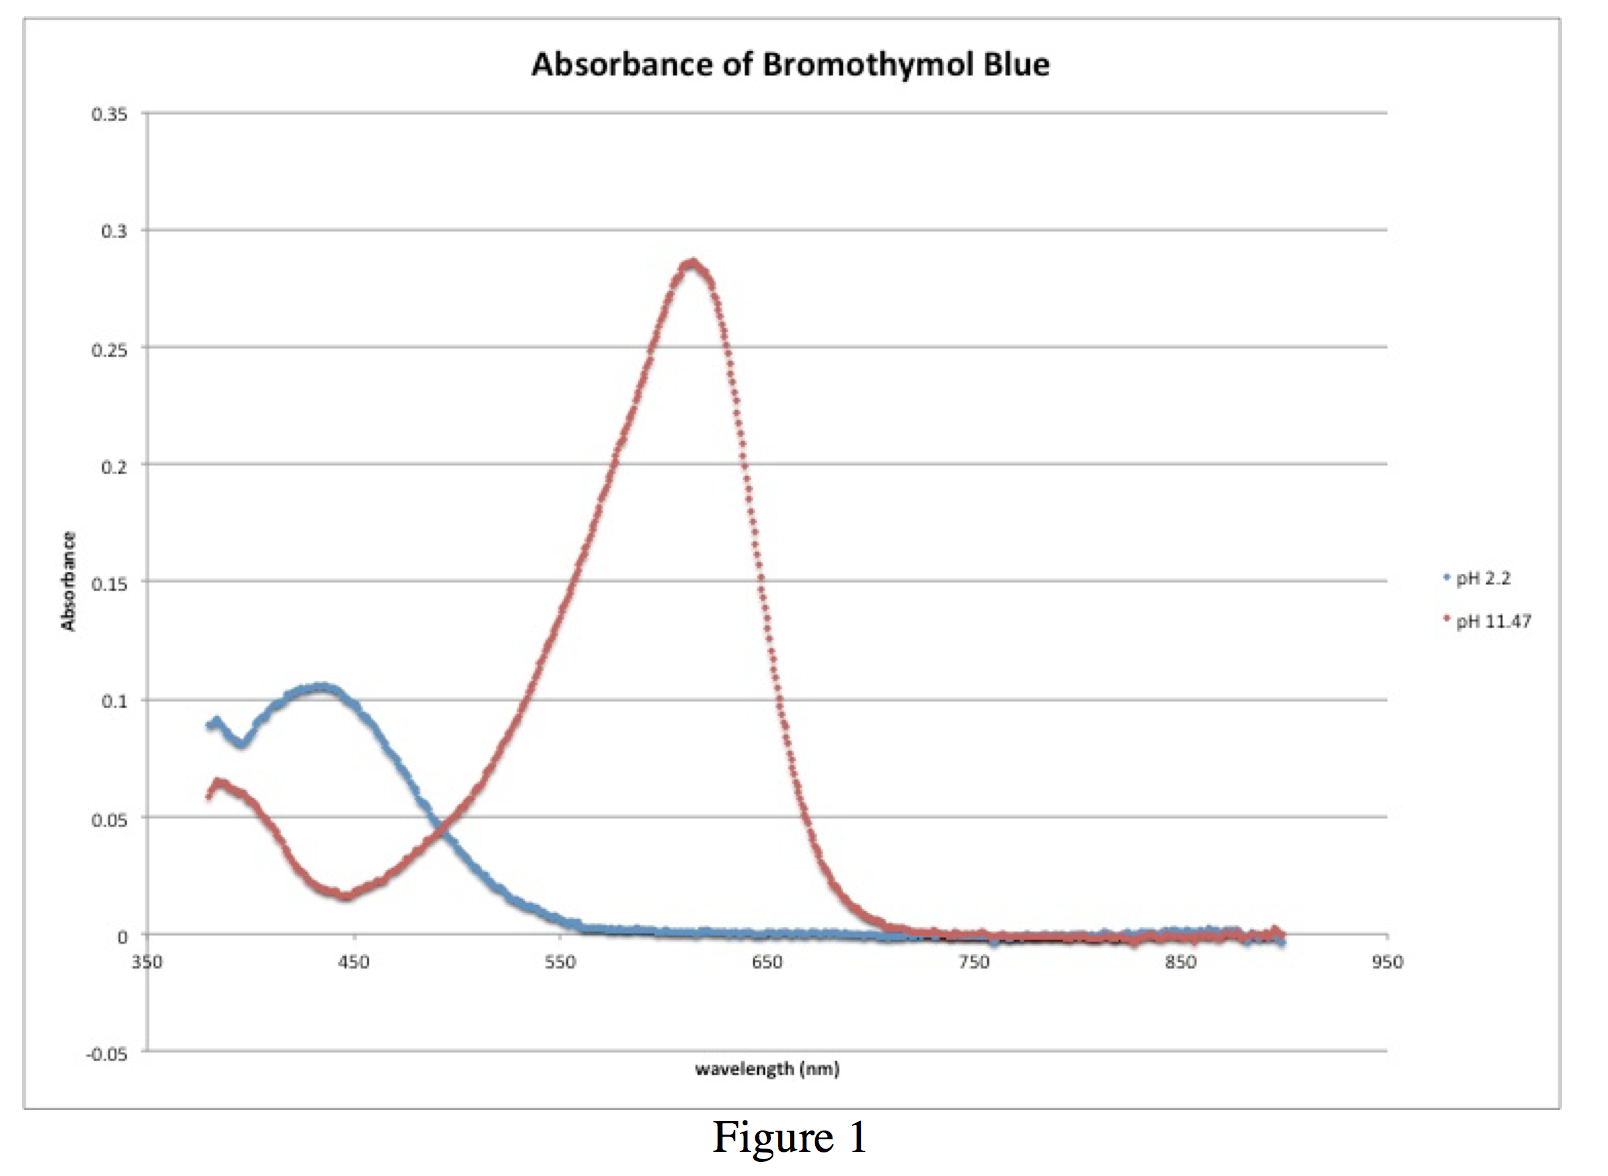 Figure 1 - Absorbance of Bromothymol Blue